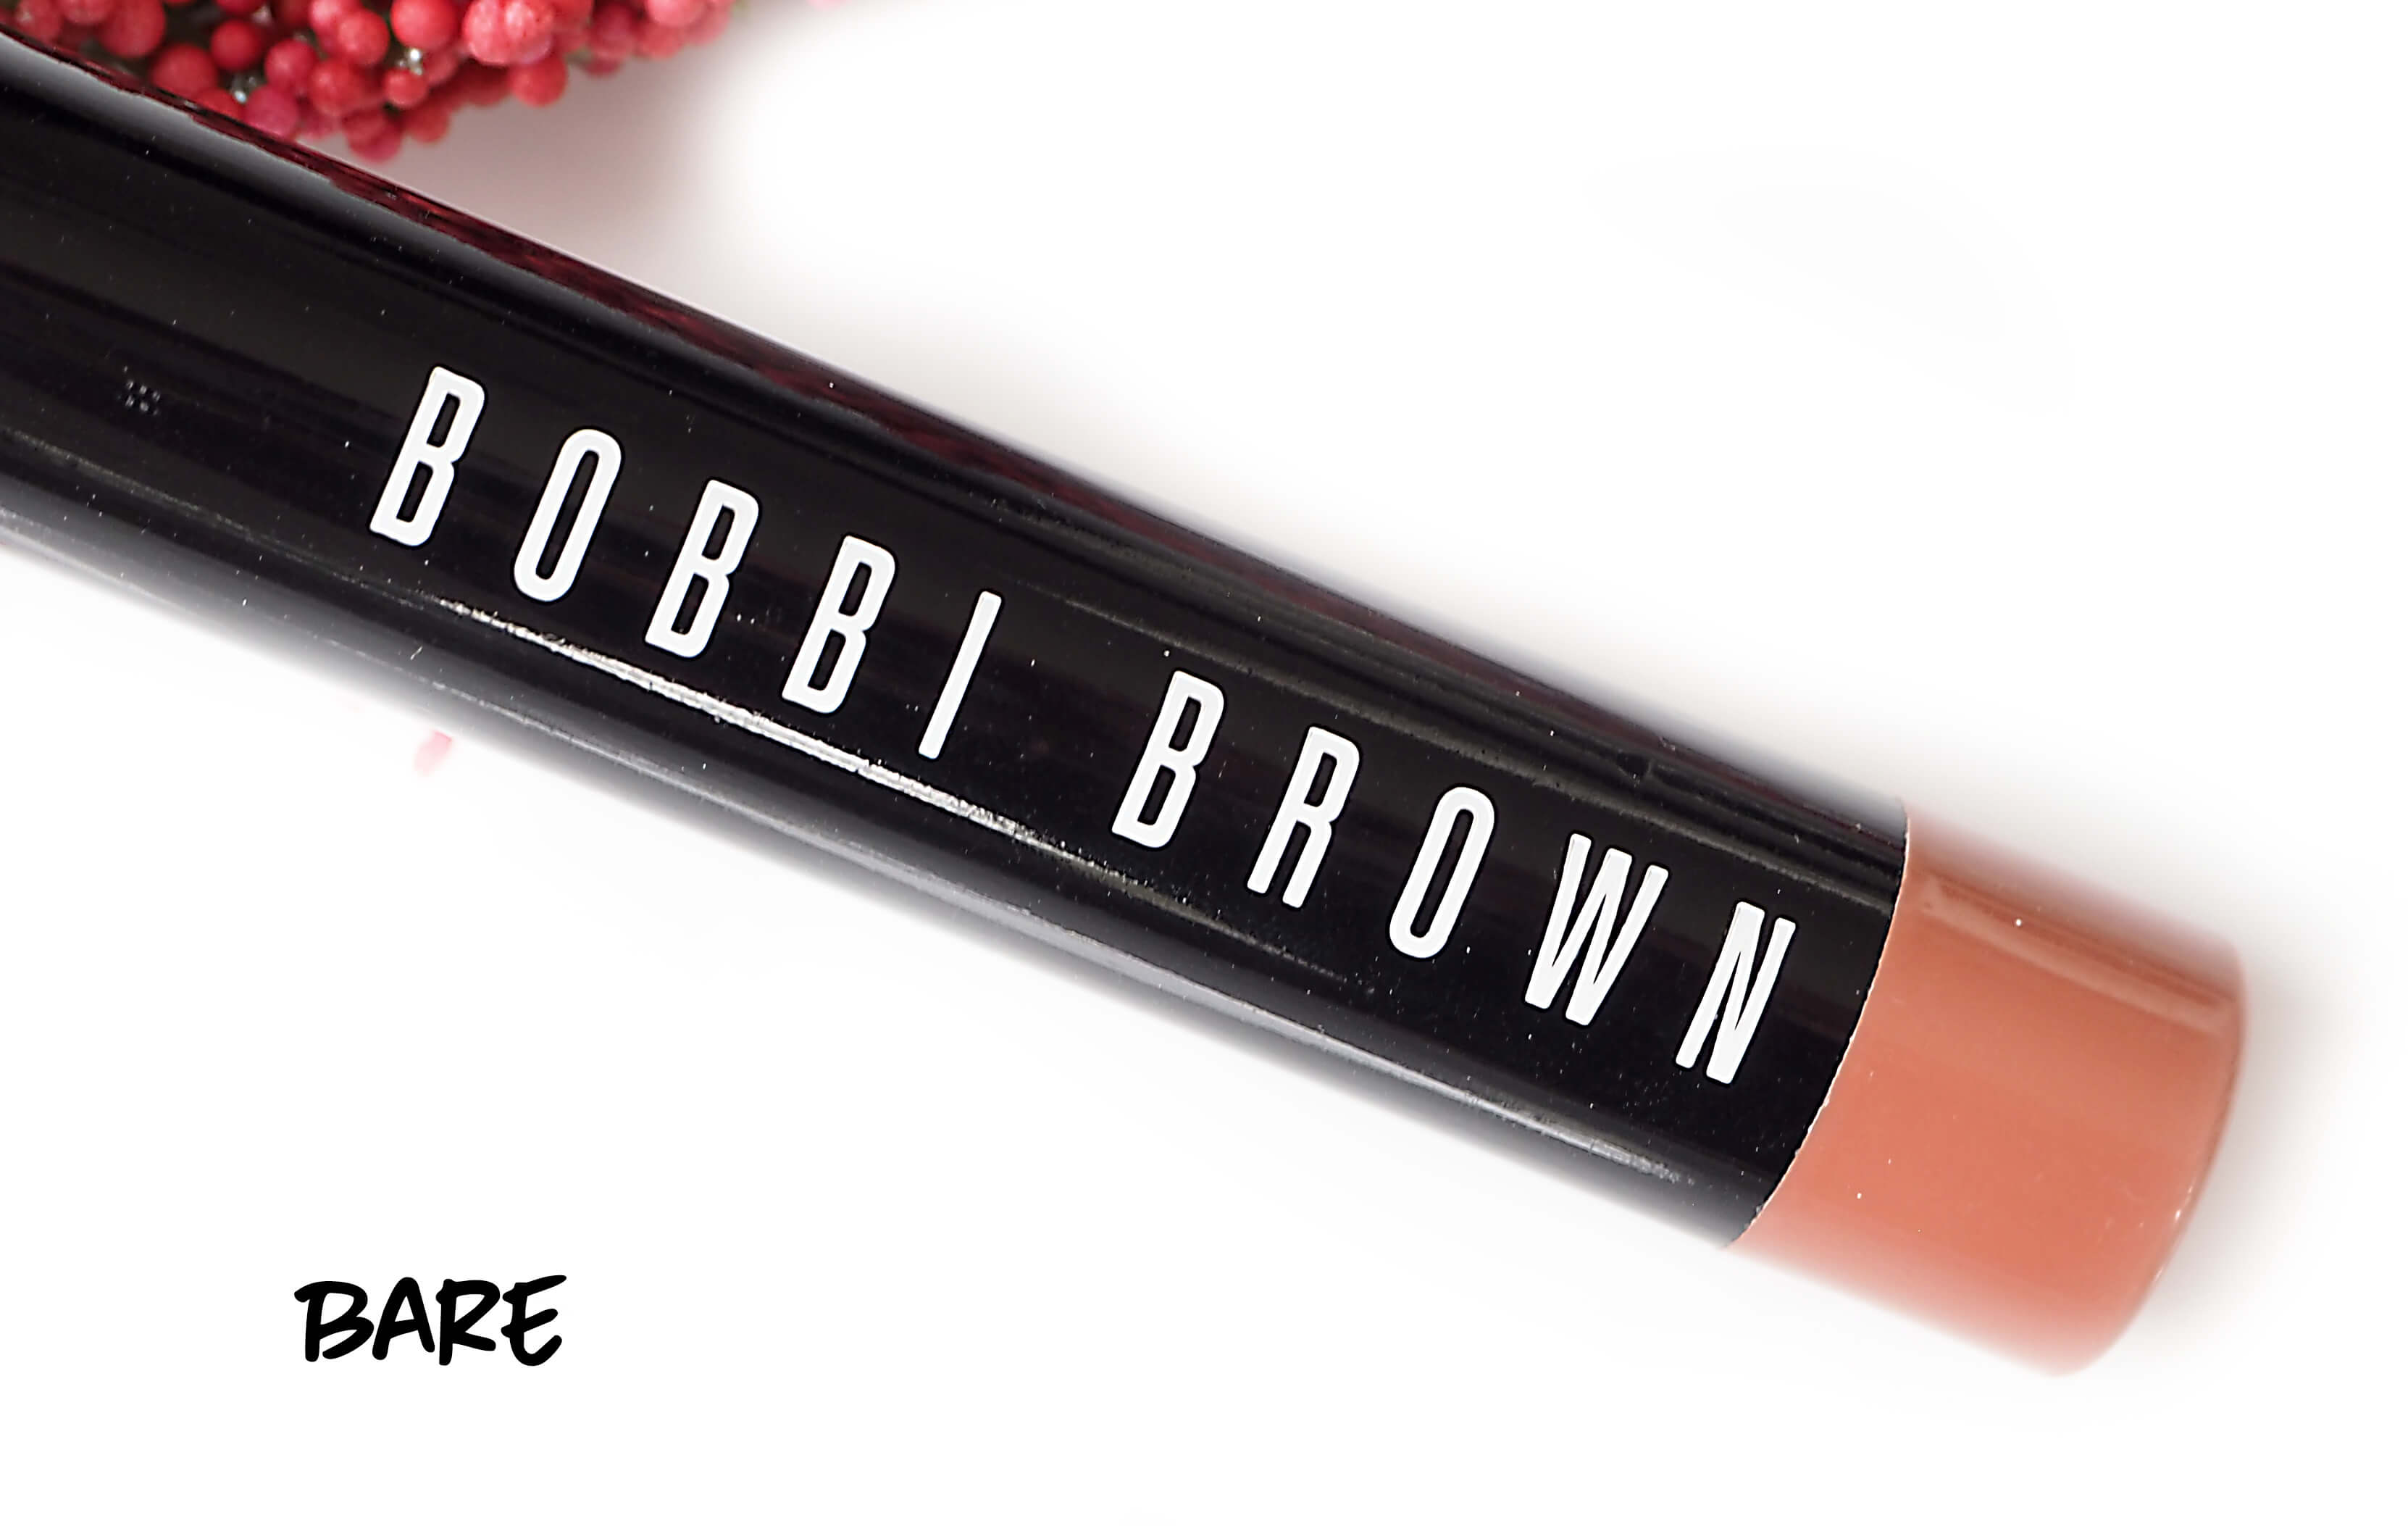 BOBBI BROWN BARE ART STICK